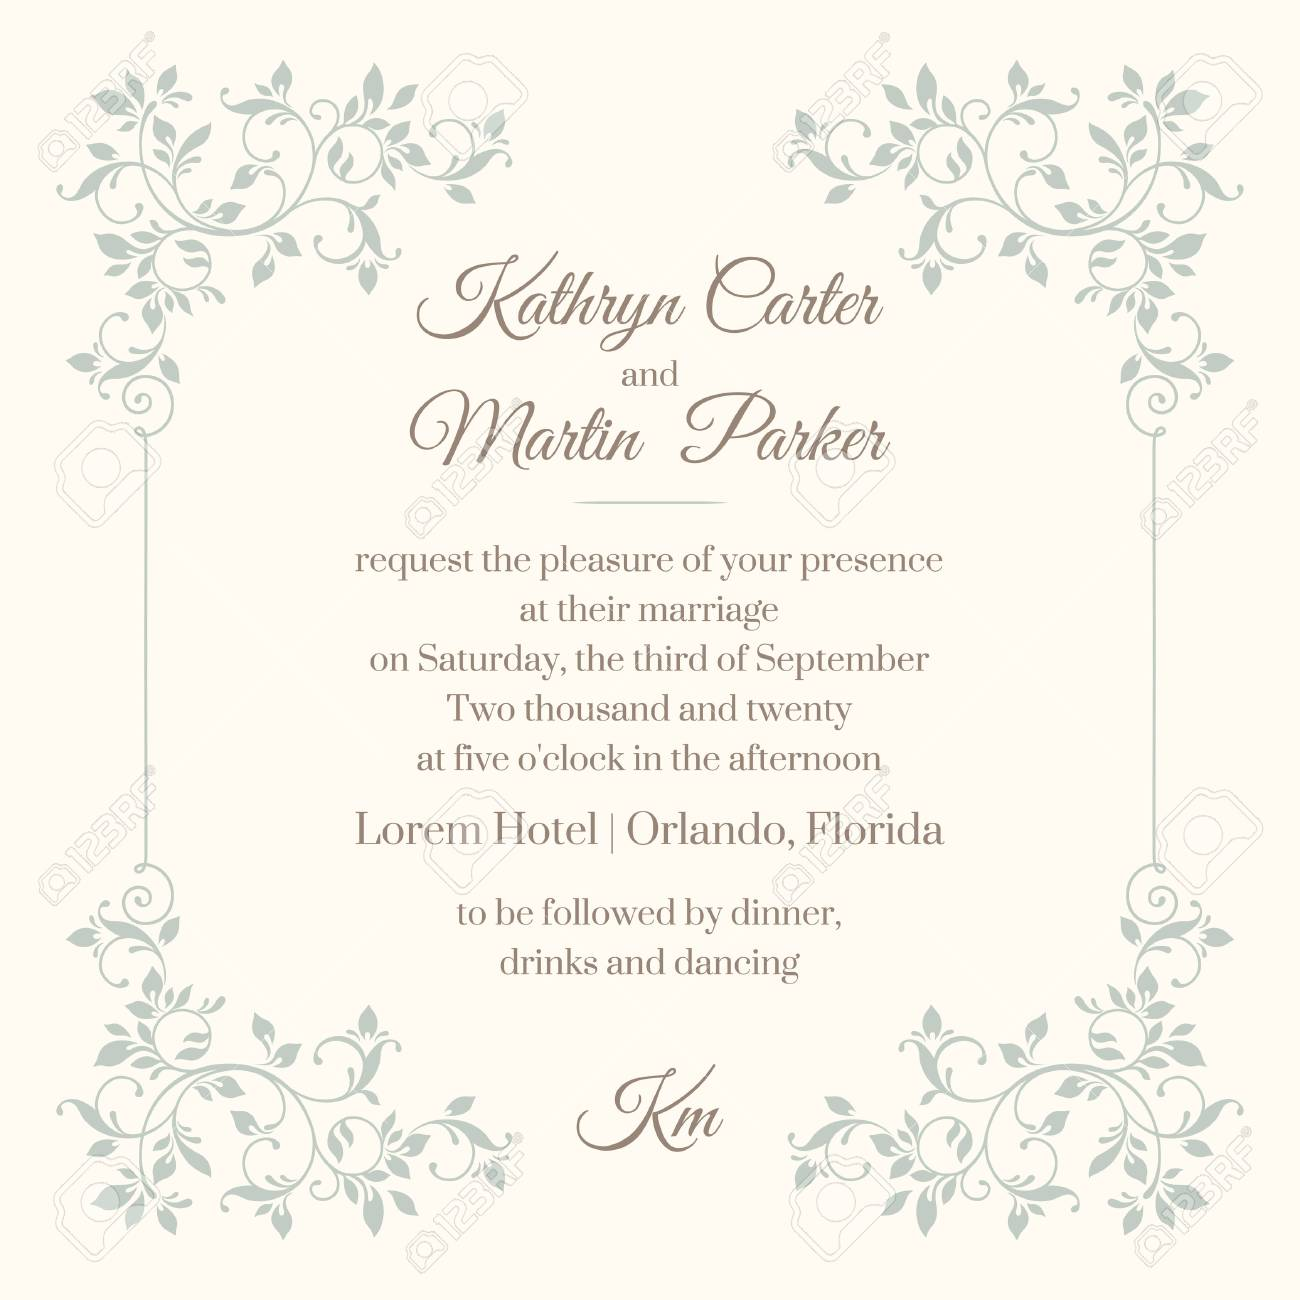 Floral frame Template for greeting cards, invitations, menus. - 50021804